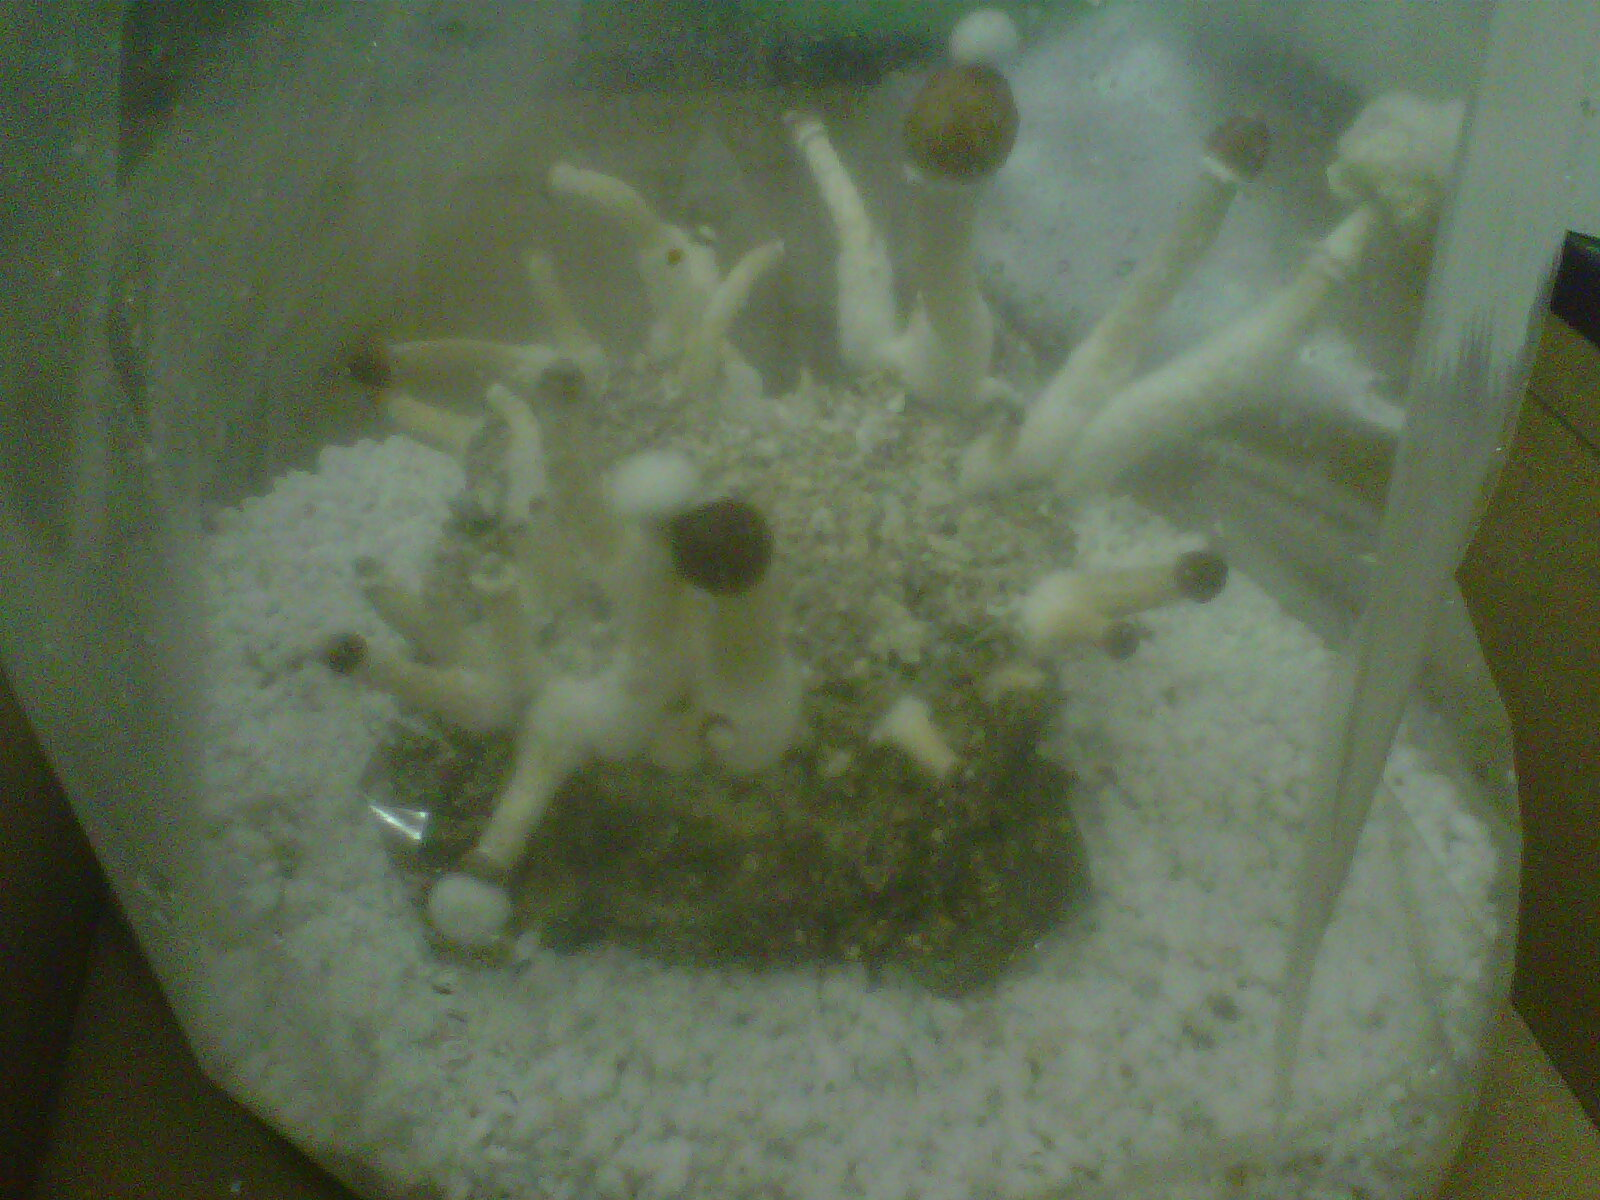 First attempt, first flush. Should be ready in a couple days